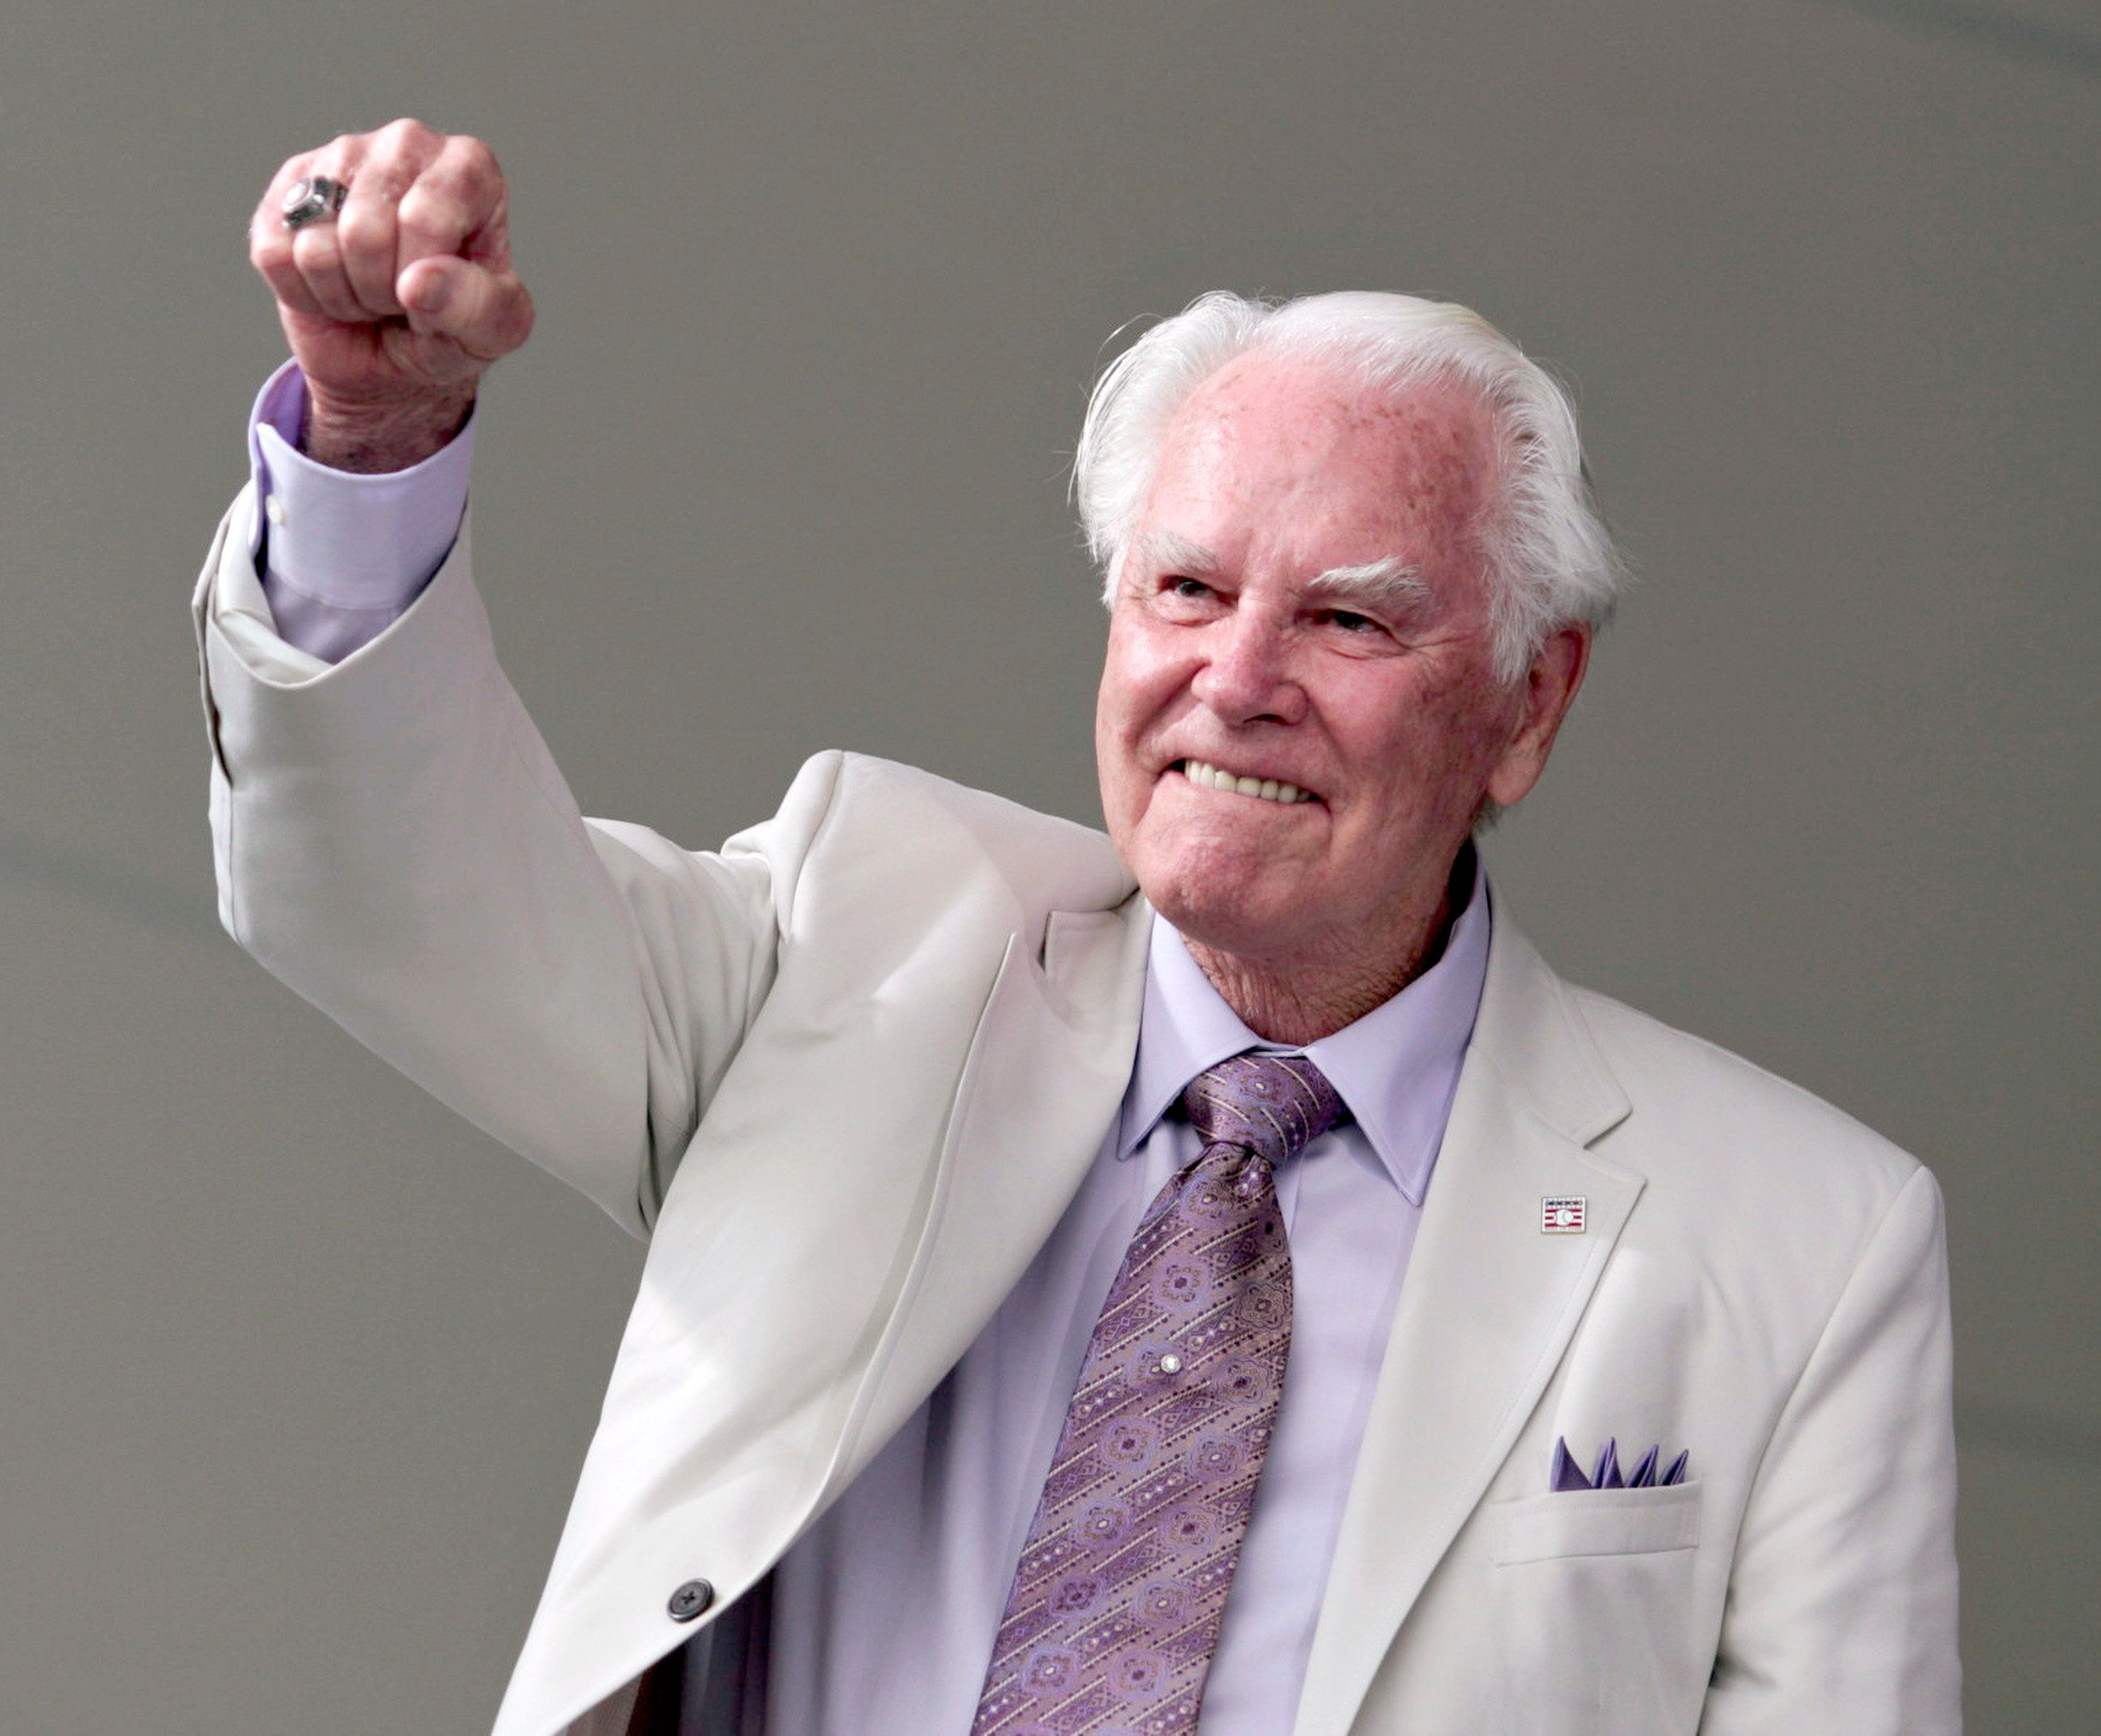 Former National League baseball umpire Doug Harvey acknowledges the crowd during National Baseball Hall of Fame induction ceremonies in Cooperstown, New York, July 25, 2010.     REUTERS/Adam Fenster  (UNITED STATES - Tags: SPORT BASEBALL)